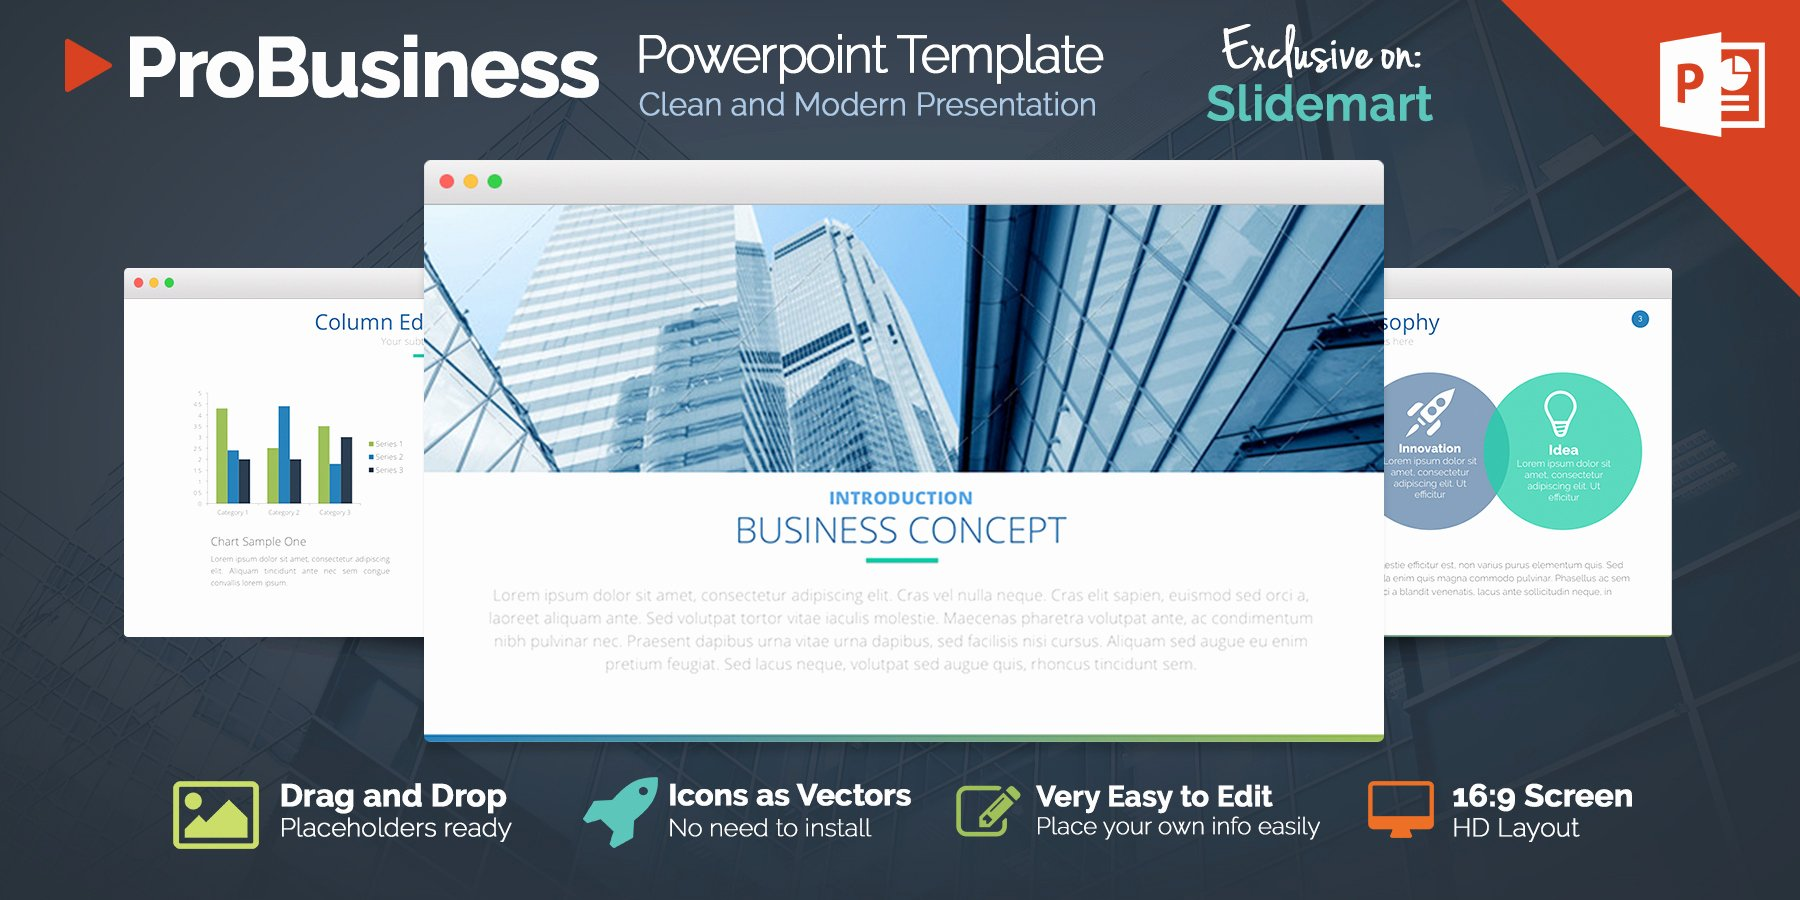 Business Plan Powerpoint Template Free Elegant the Best 8 Free Powerpoint Templates